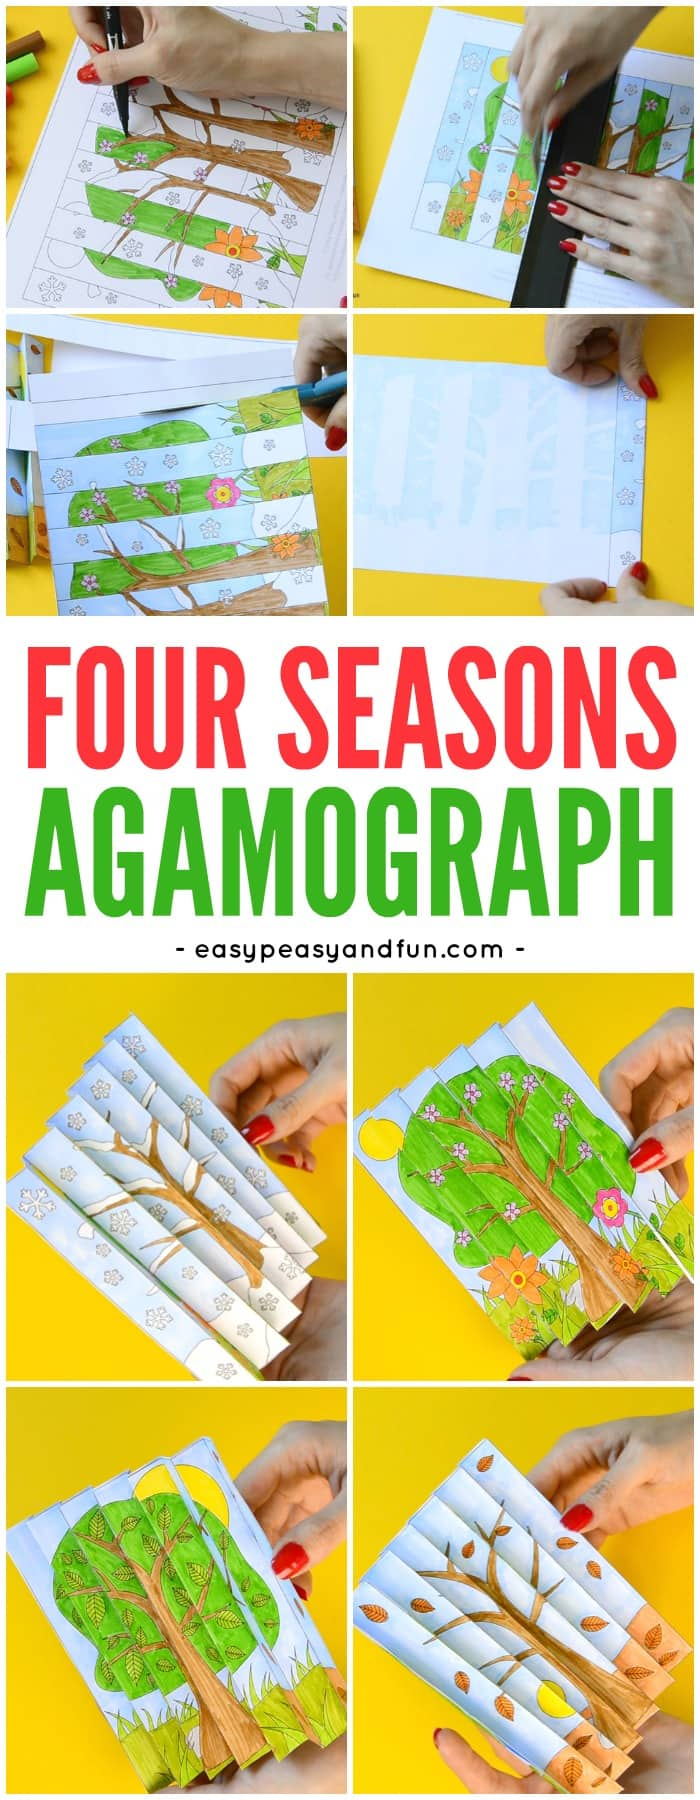 image about Seasons Printable called 4 Seasons Agamograph Template - Very simple Peasy and Pleasurable